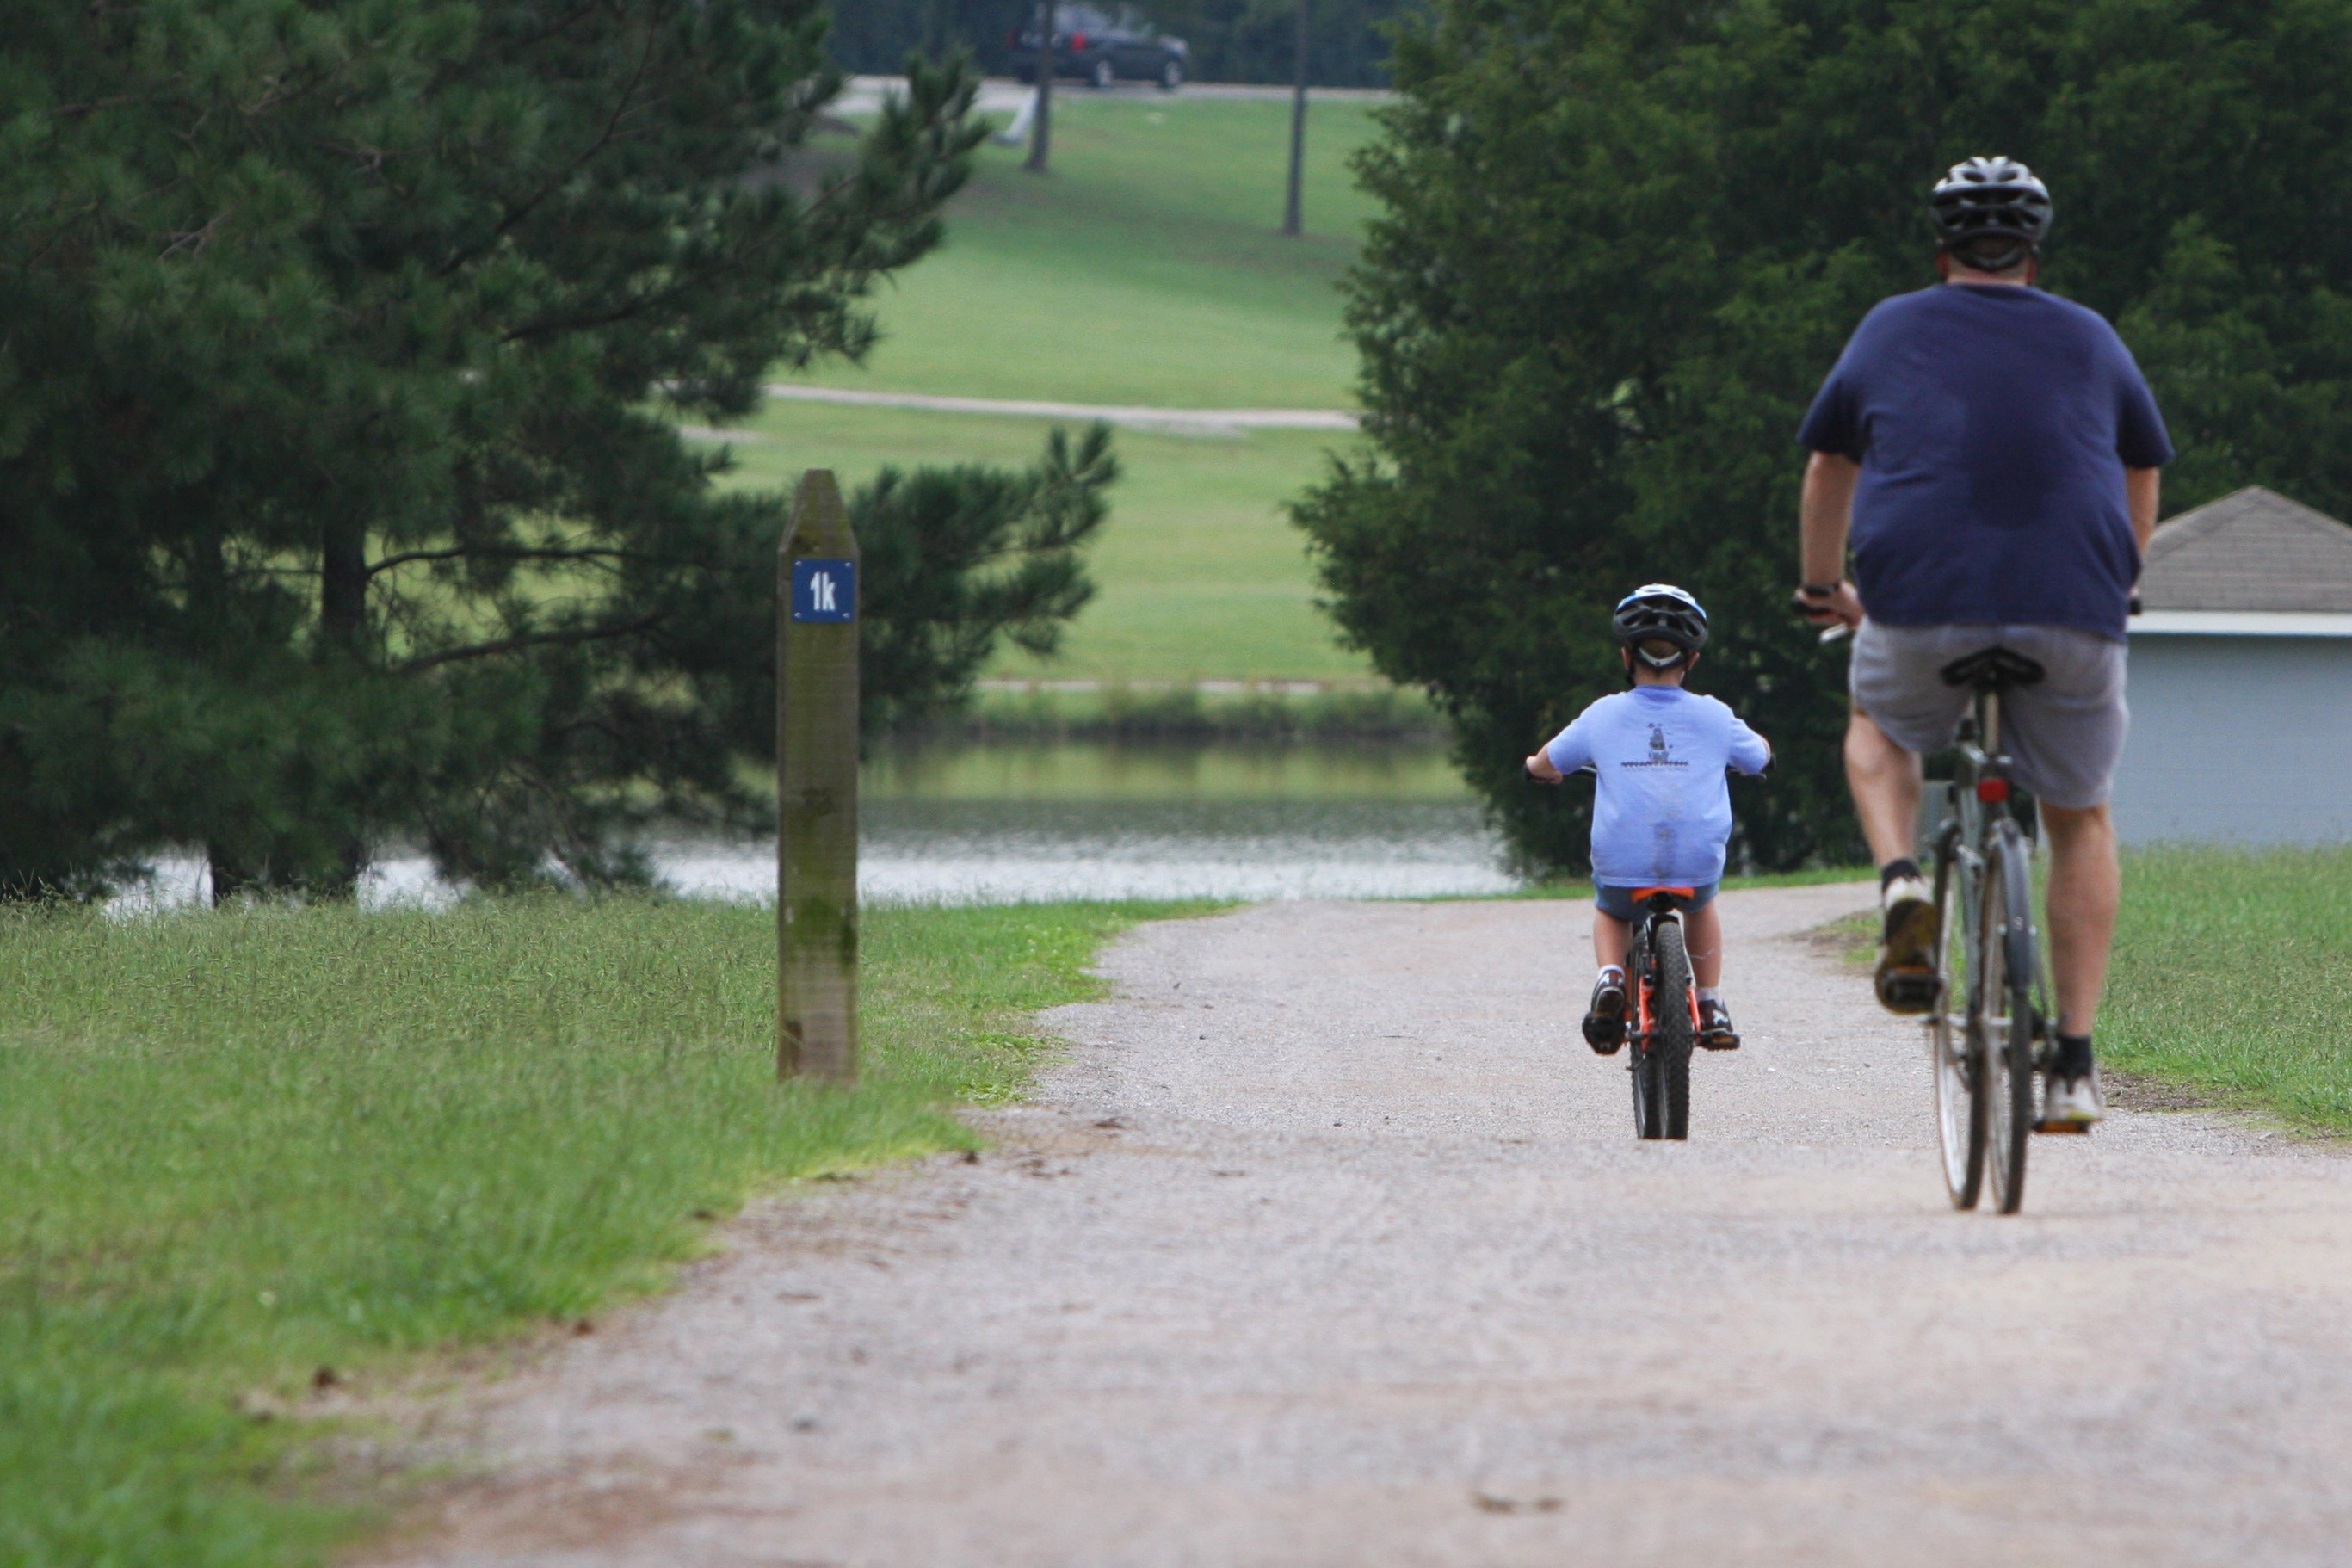 photo: Bikers on trail. Photo by Tommy Daniel.